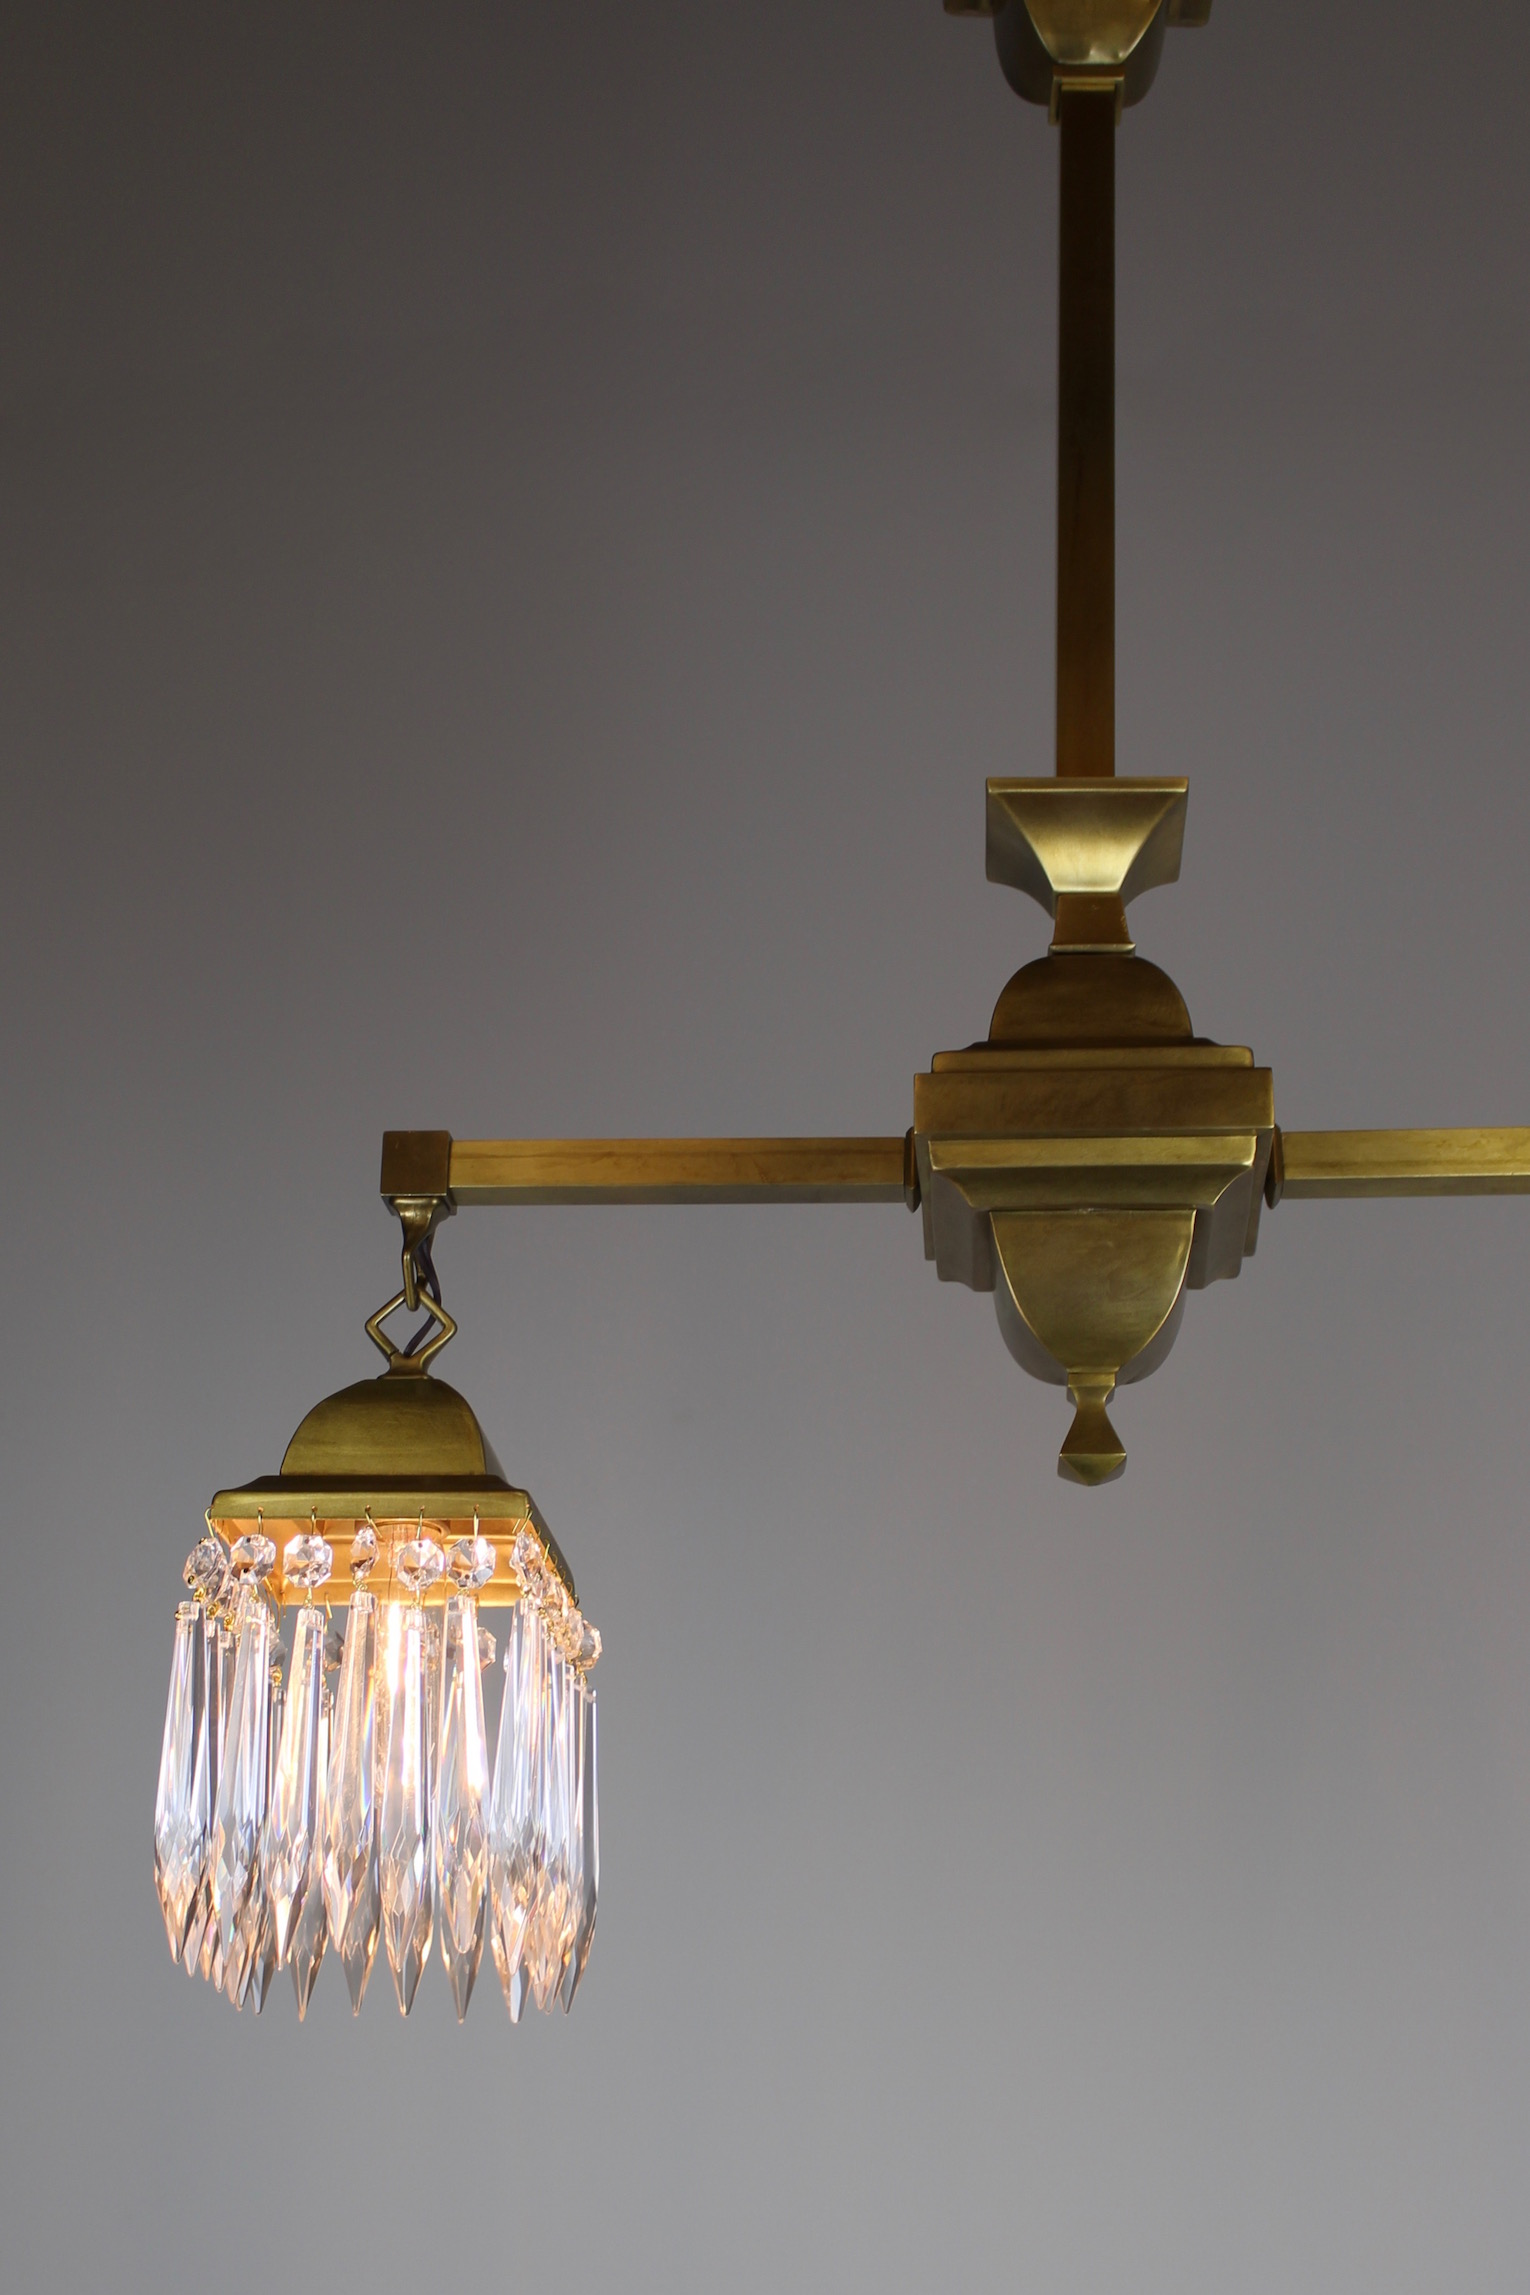 floor corona plenty cable led of chandelier elegant lamp suspended up carlyle mission style